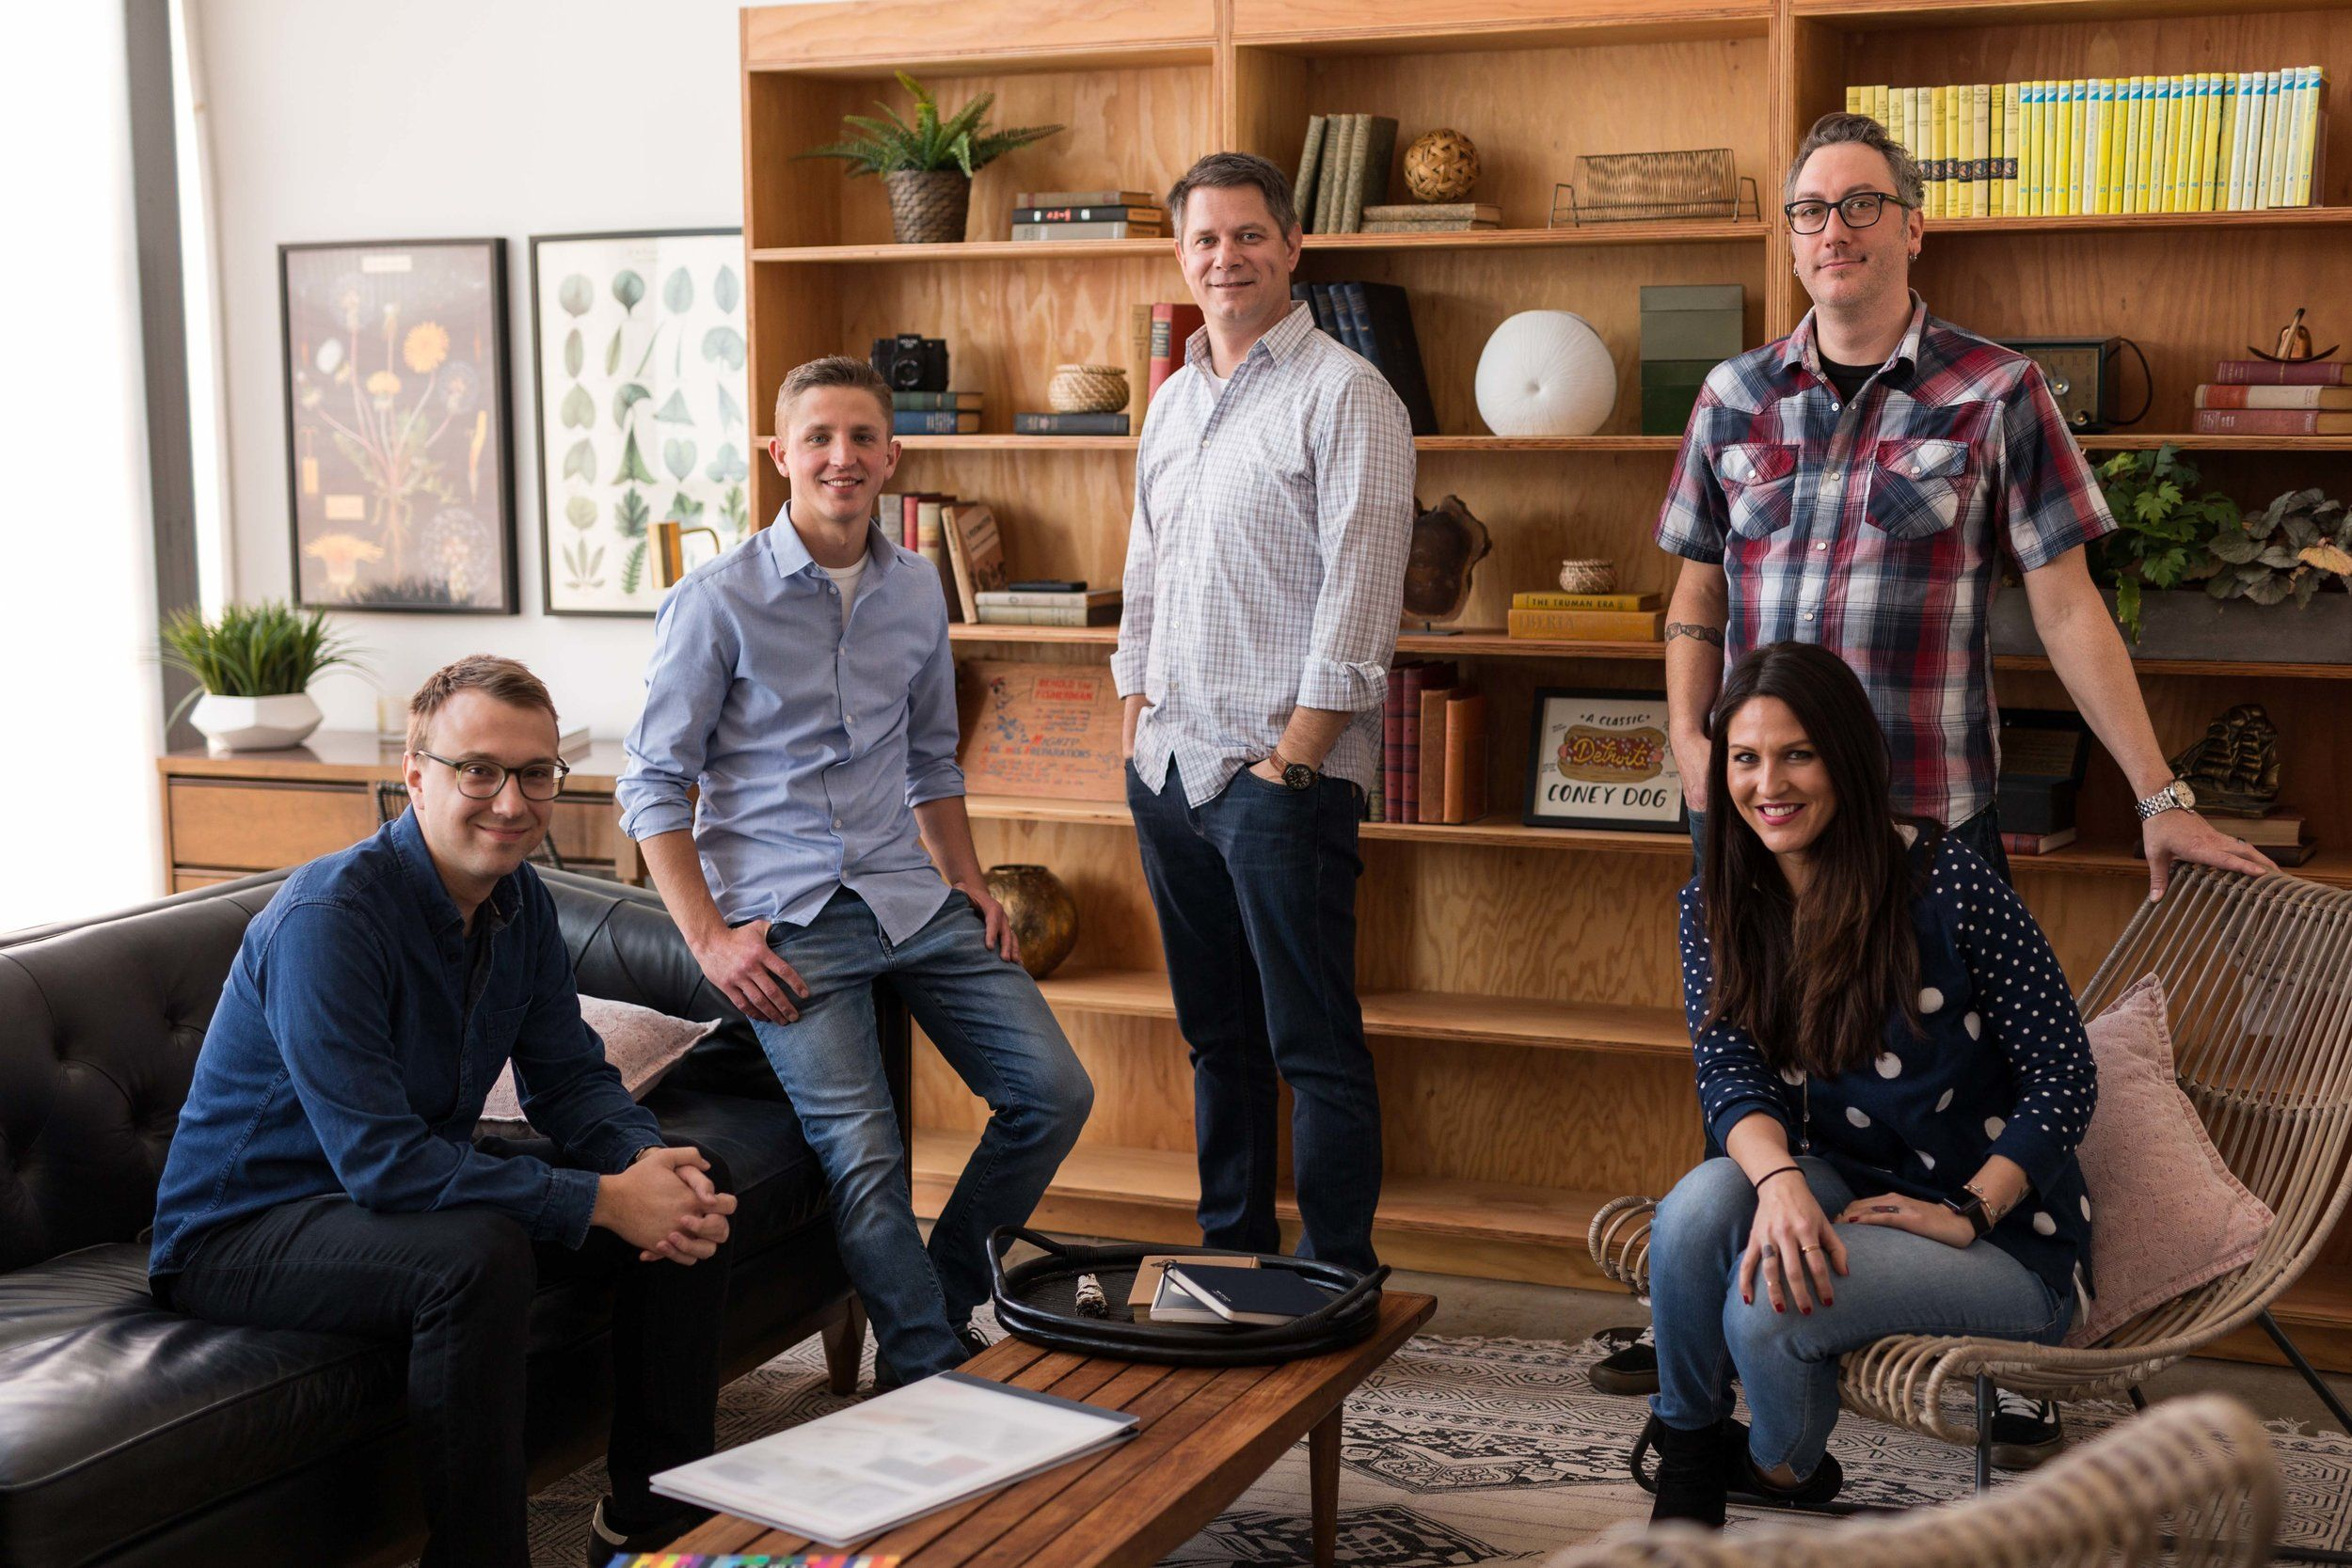 Corporate Staff Team Photo Of Drive Creative Agency Industrial